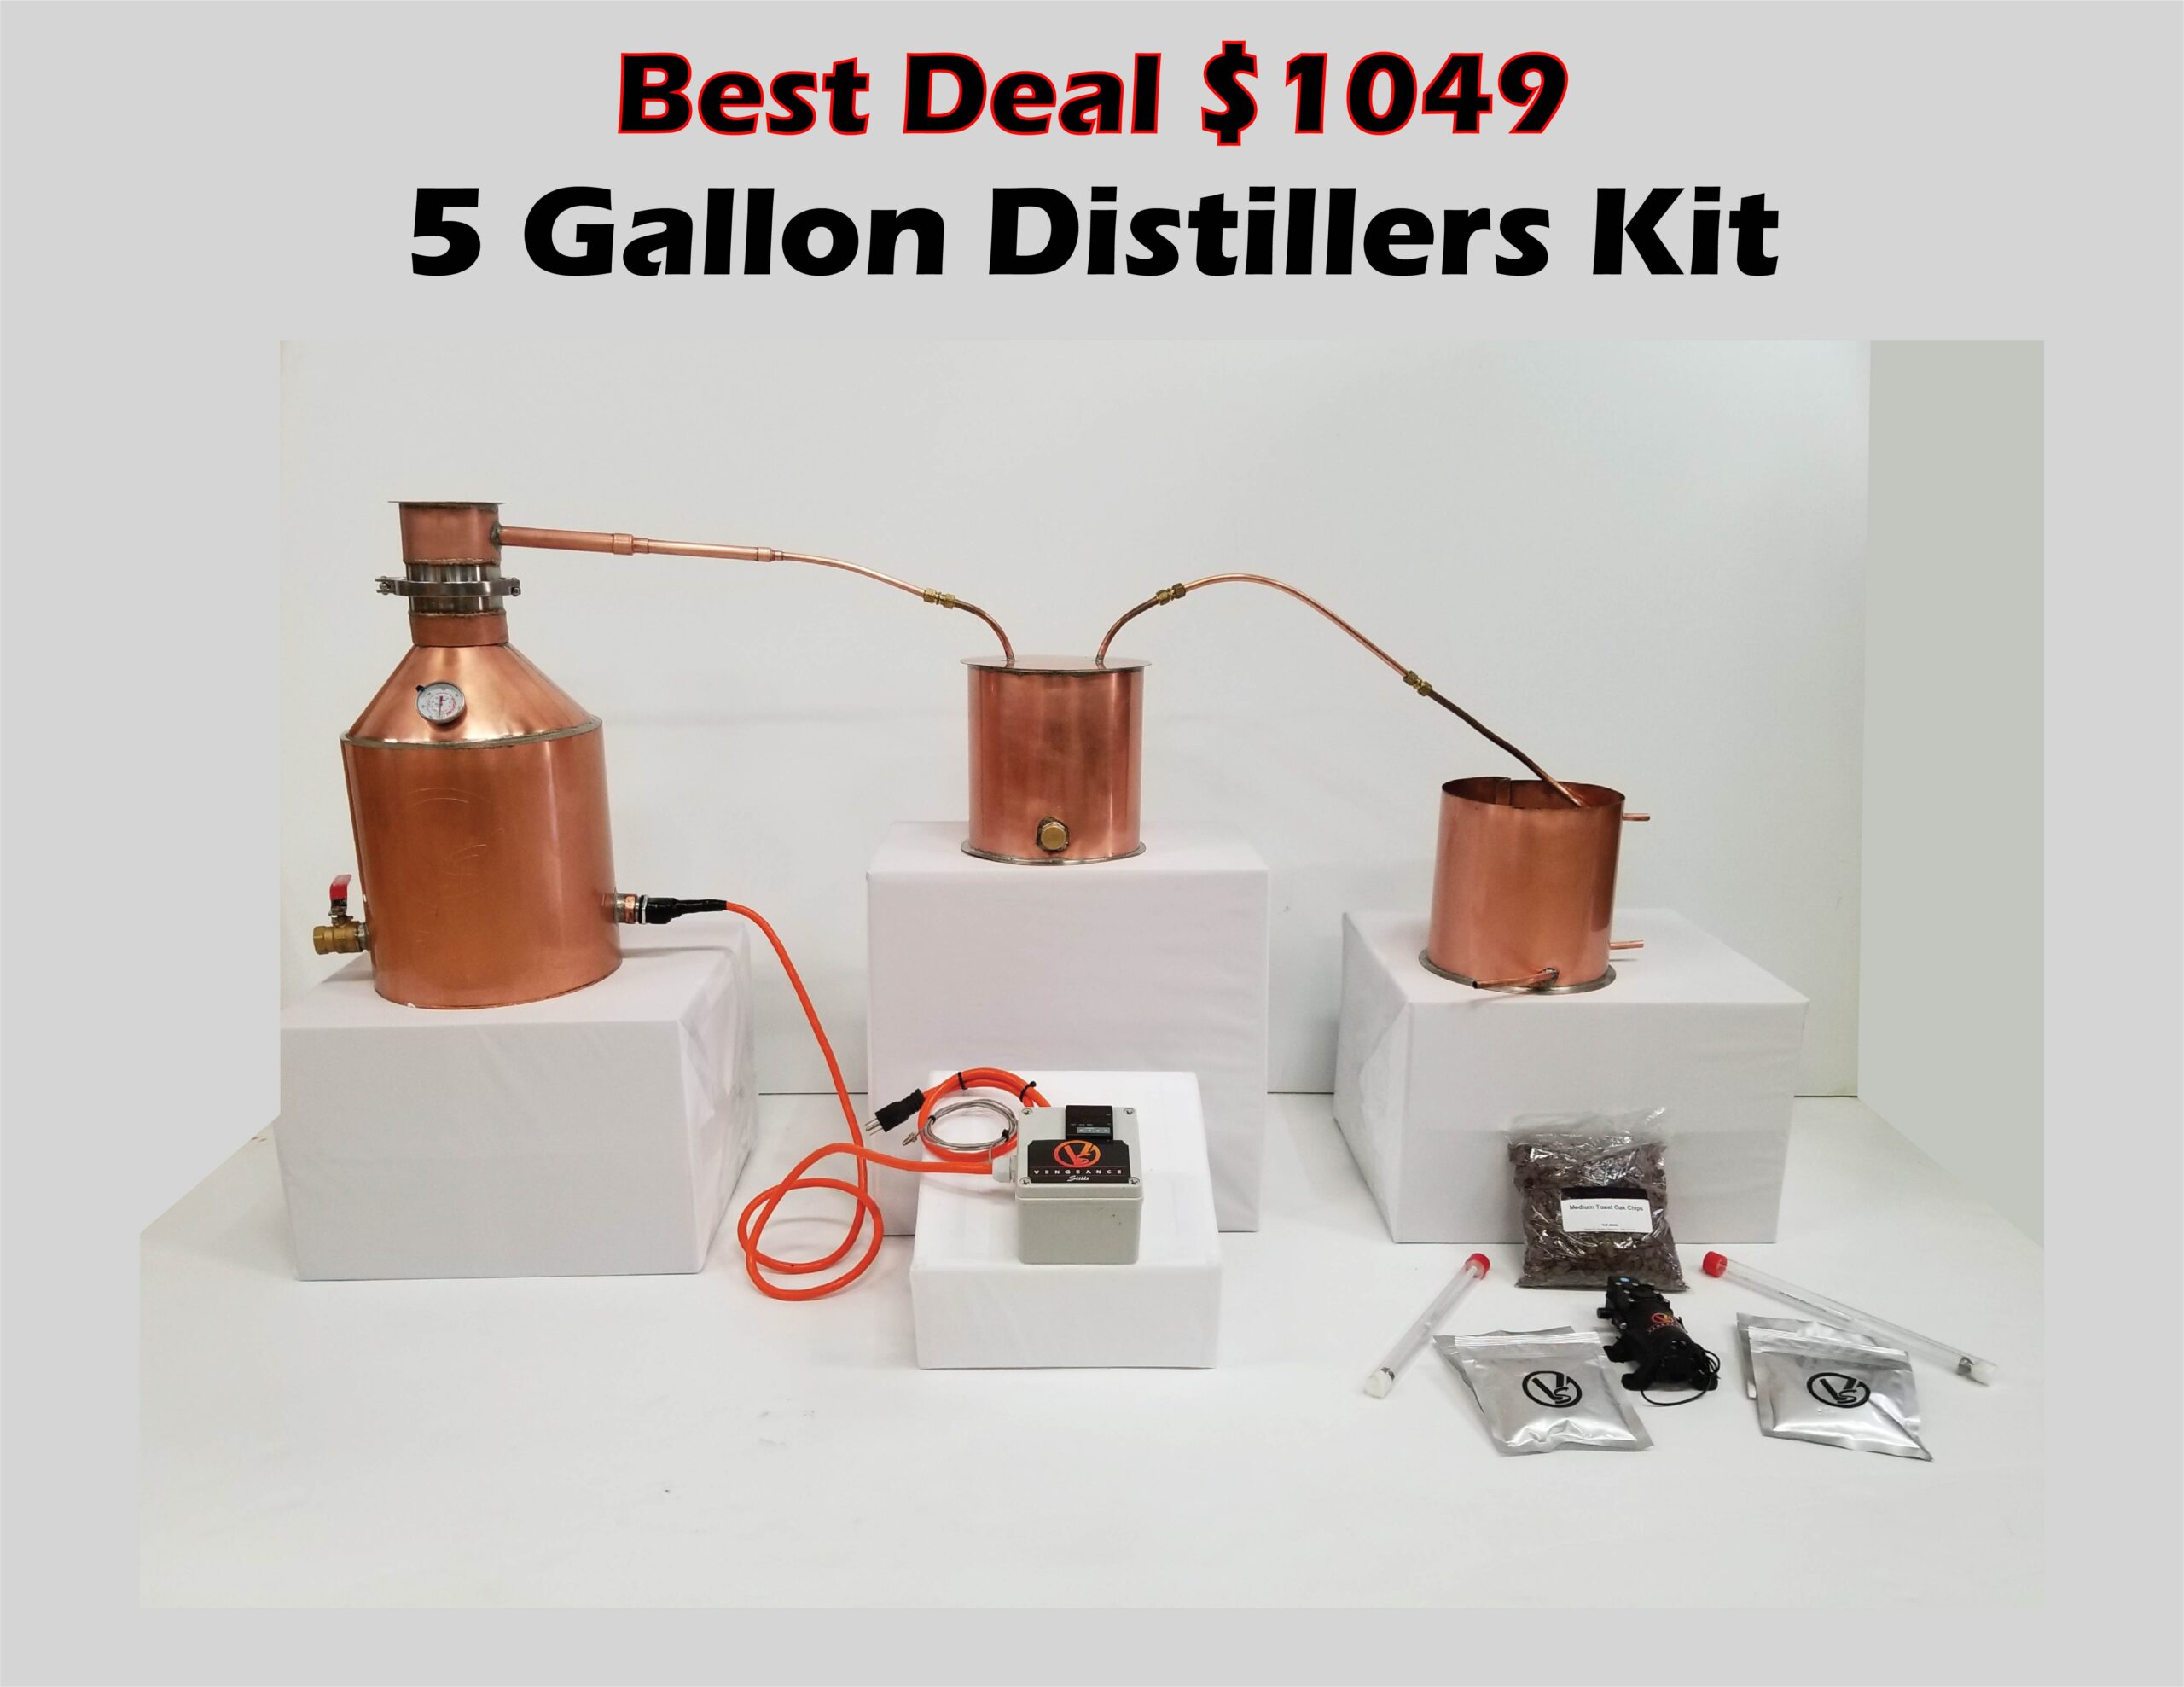 5 Gallon Complete Distillers Kit